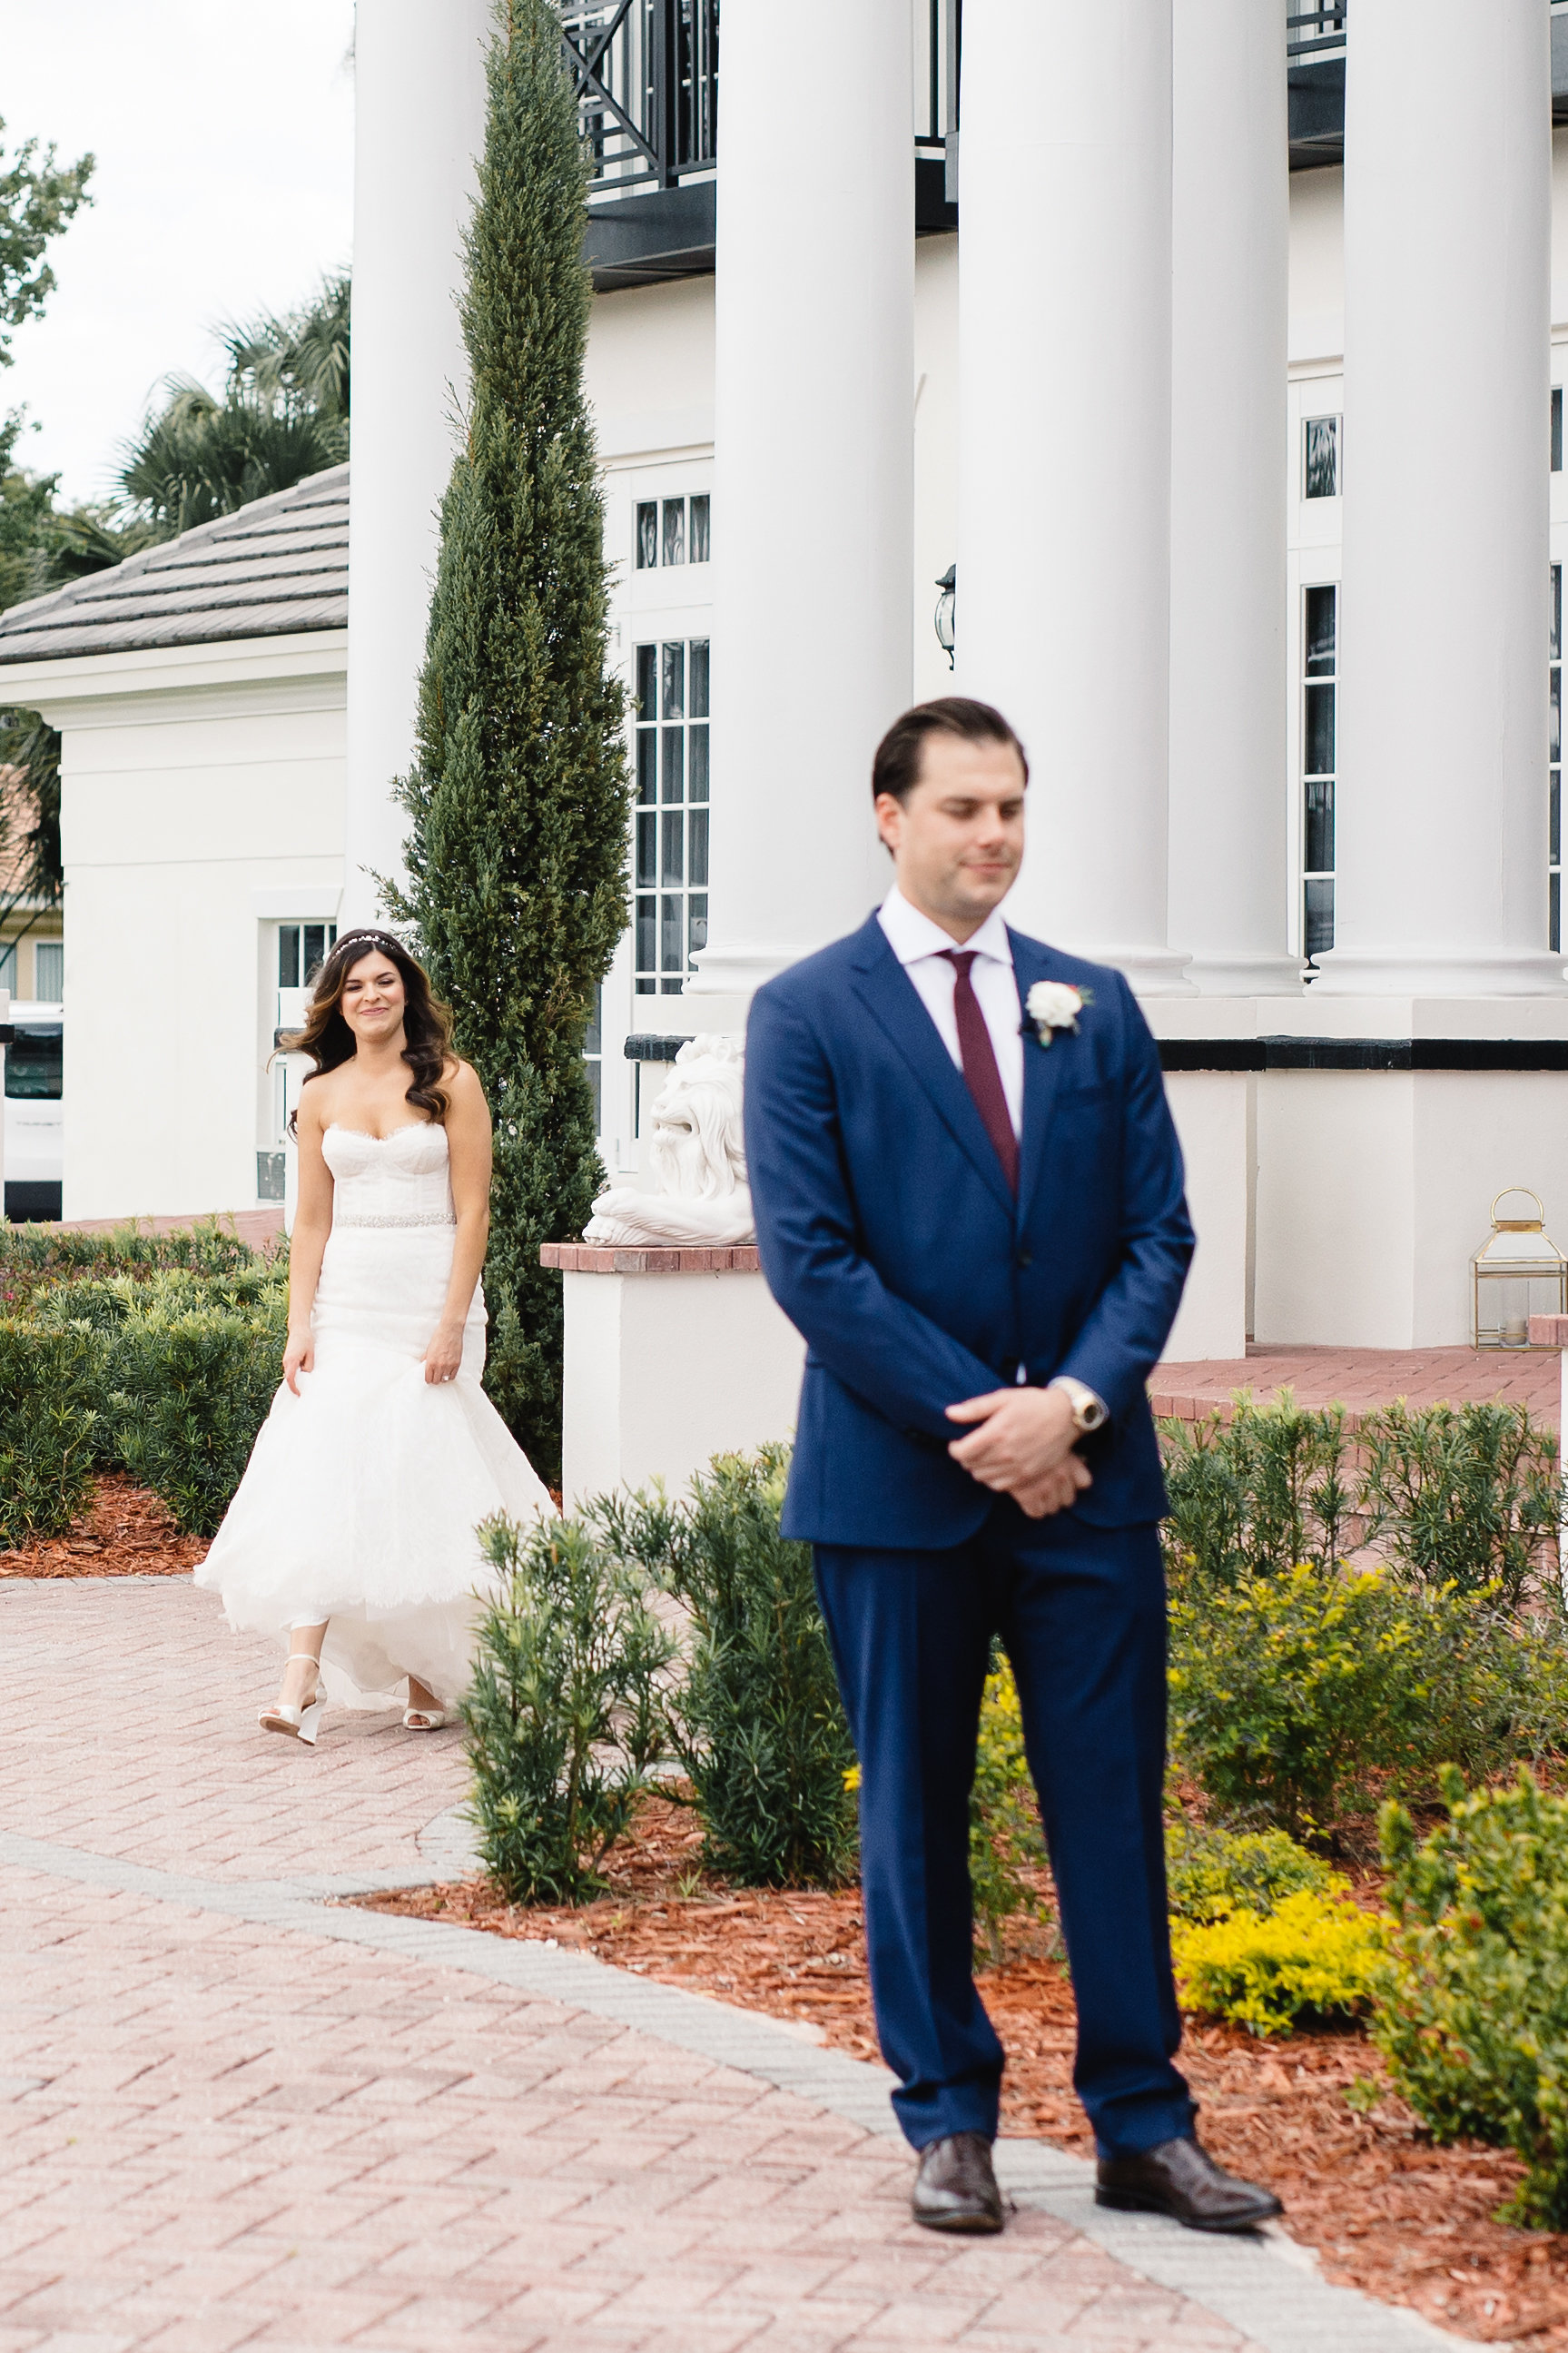 Bride & Groom First Look at Luxmore Grande Estate  Orlando Wedding Planner Blue Ribbon Weddings  Orlando Bridal Salon The Collection in Winter Park Florida  Orlando Wedding Photographer JP Pratt Photography  Wedding Ceremony & Reception at Luxmore Grande Estate